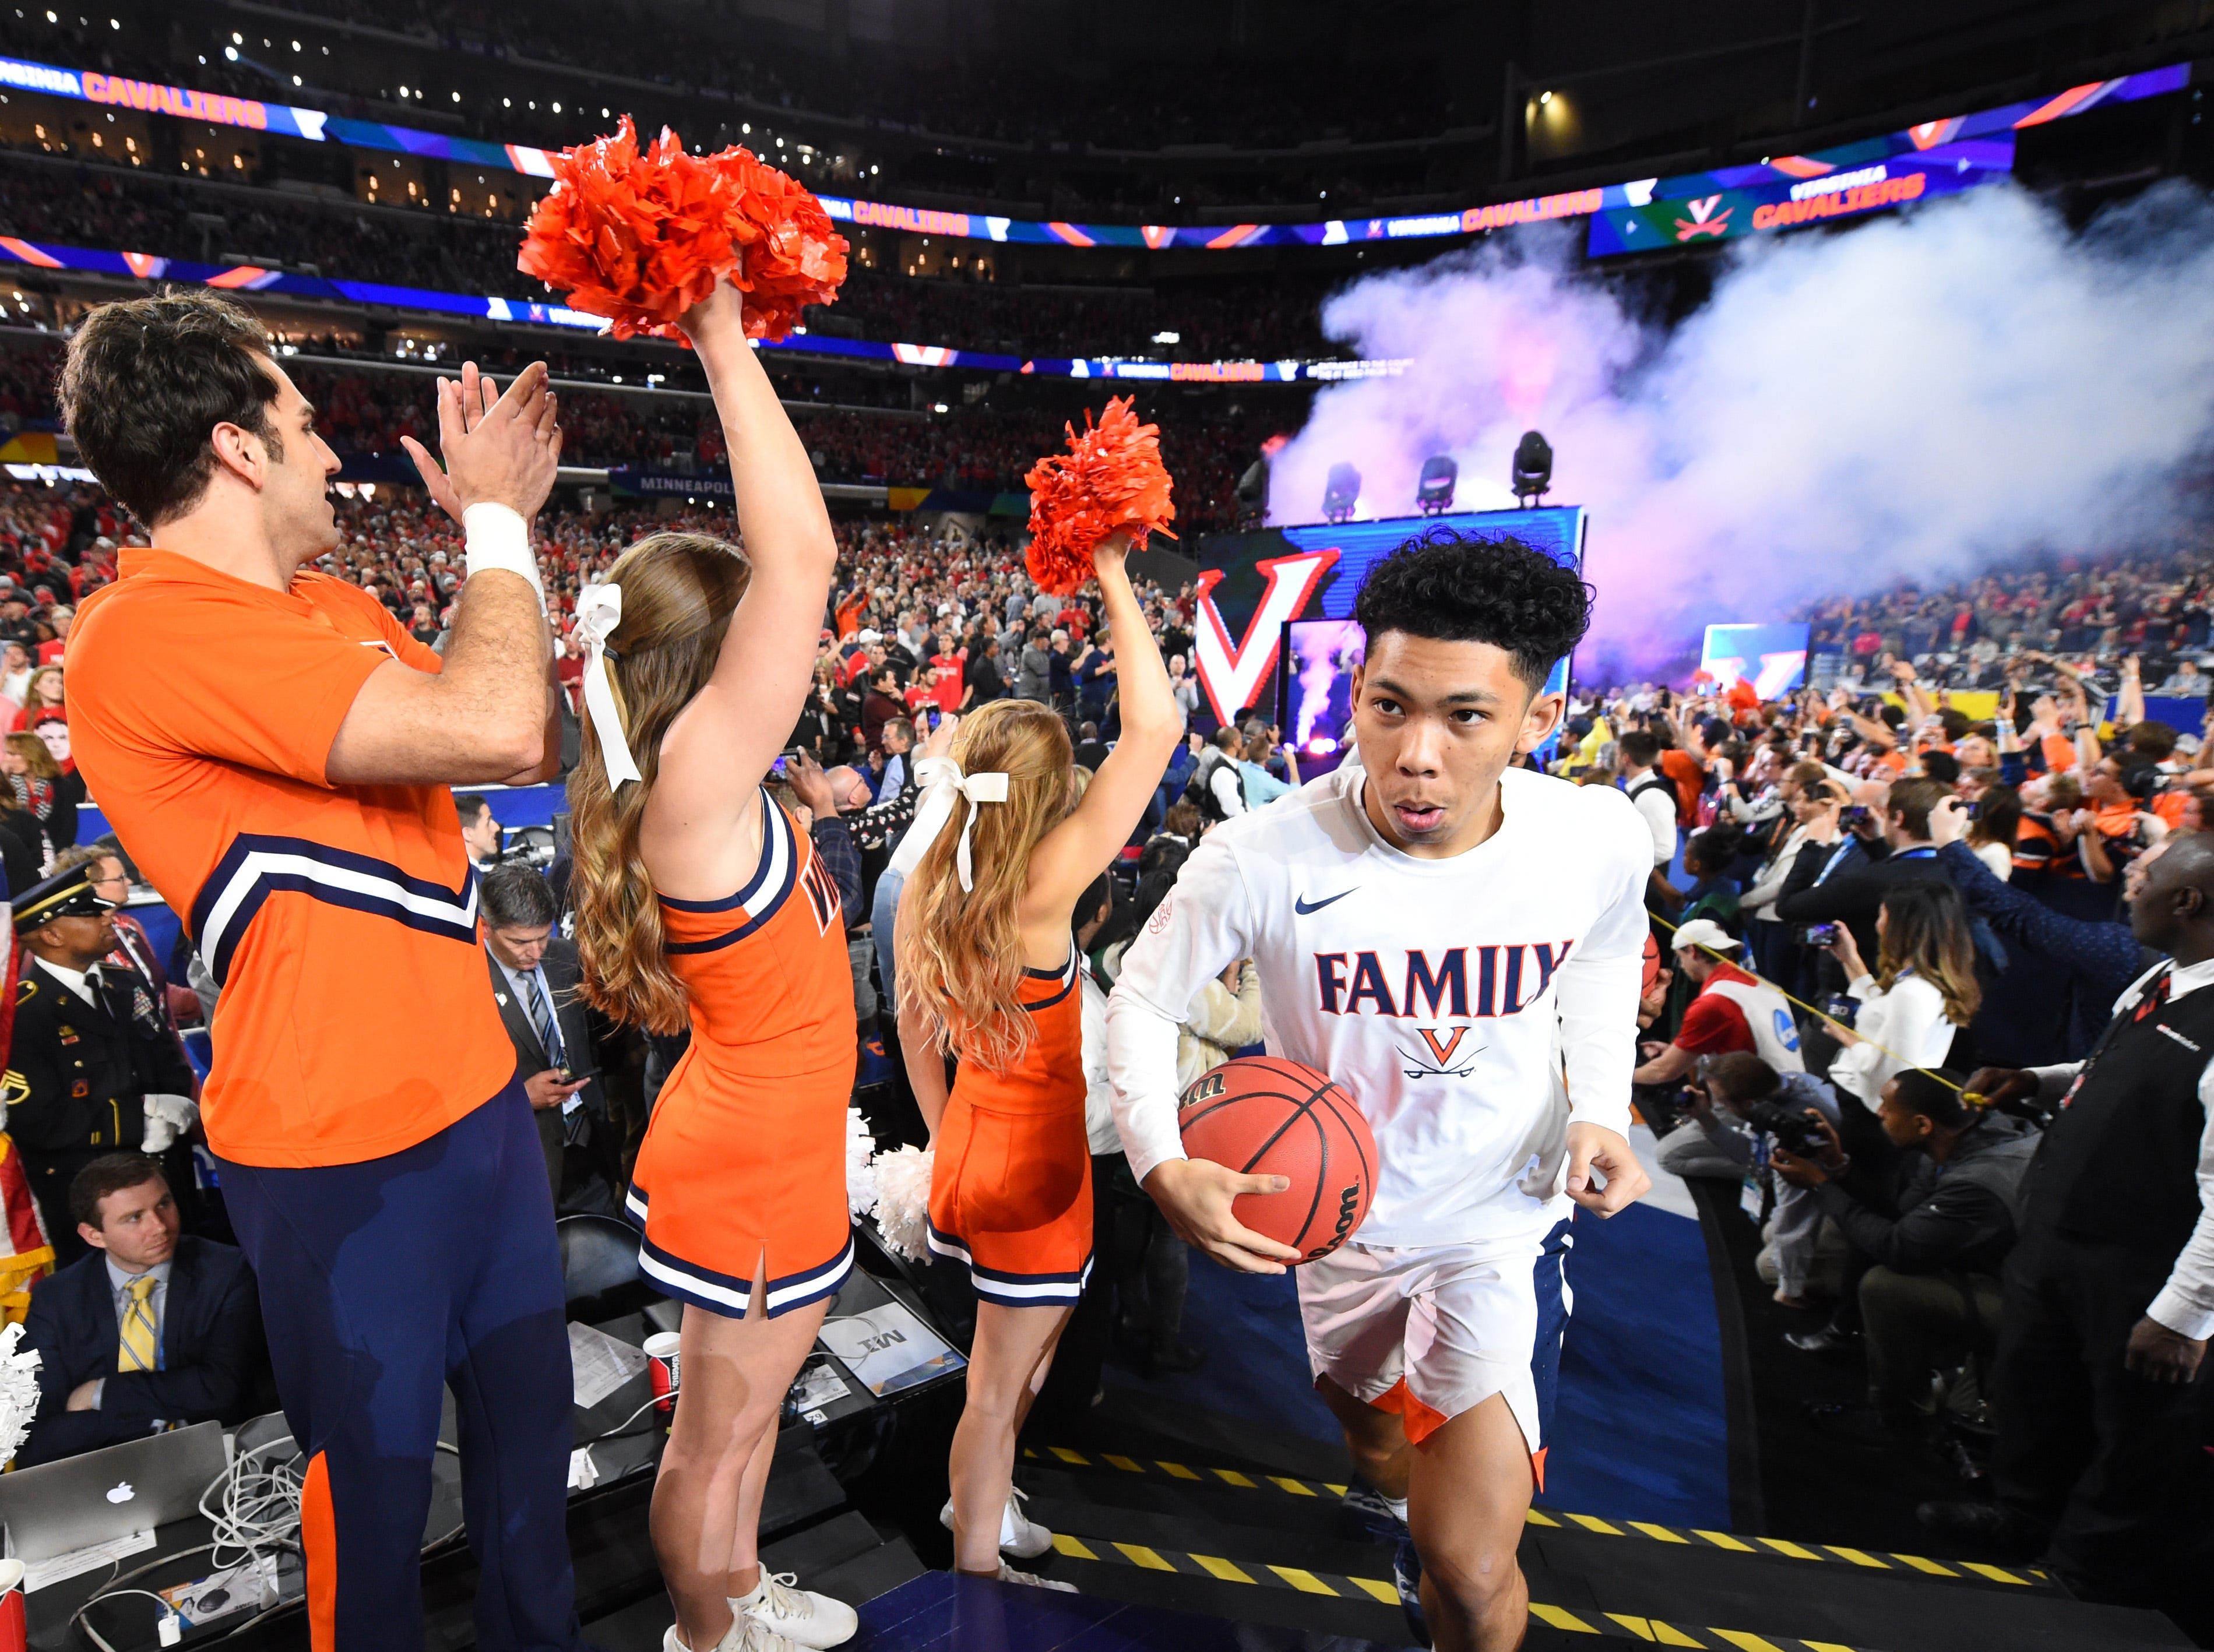 Apr 8, 2019; Minneapolis, MN, USA; Virginia Cavaliers guard Kihei Clark (0) and the Virginia Cavaliers take the floor prior to facing the Texas Tech Red Raiders in the championship game of the 2019 men's Final Four at US Bank Stadium. Mandatory Credit: Robert Deutsch-USA TODAY Sports